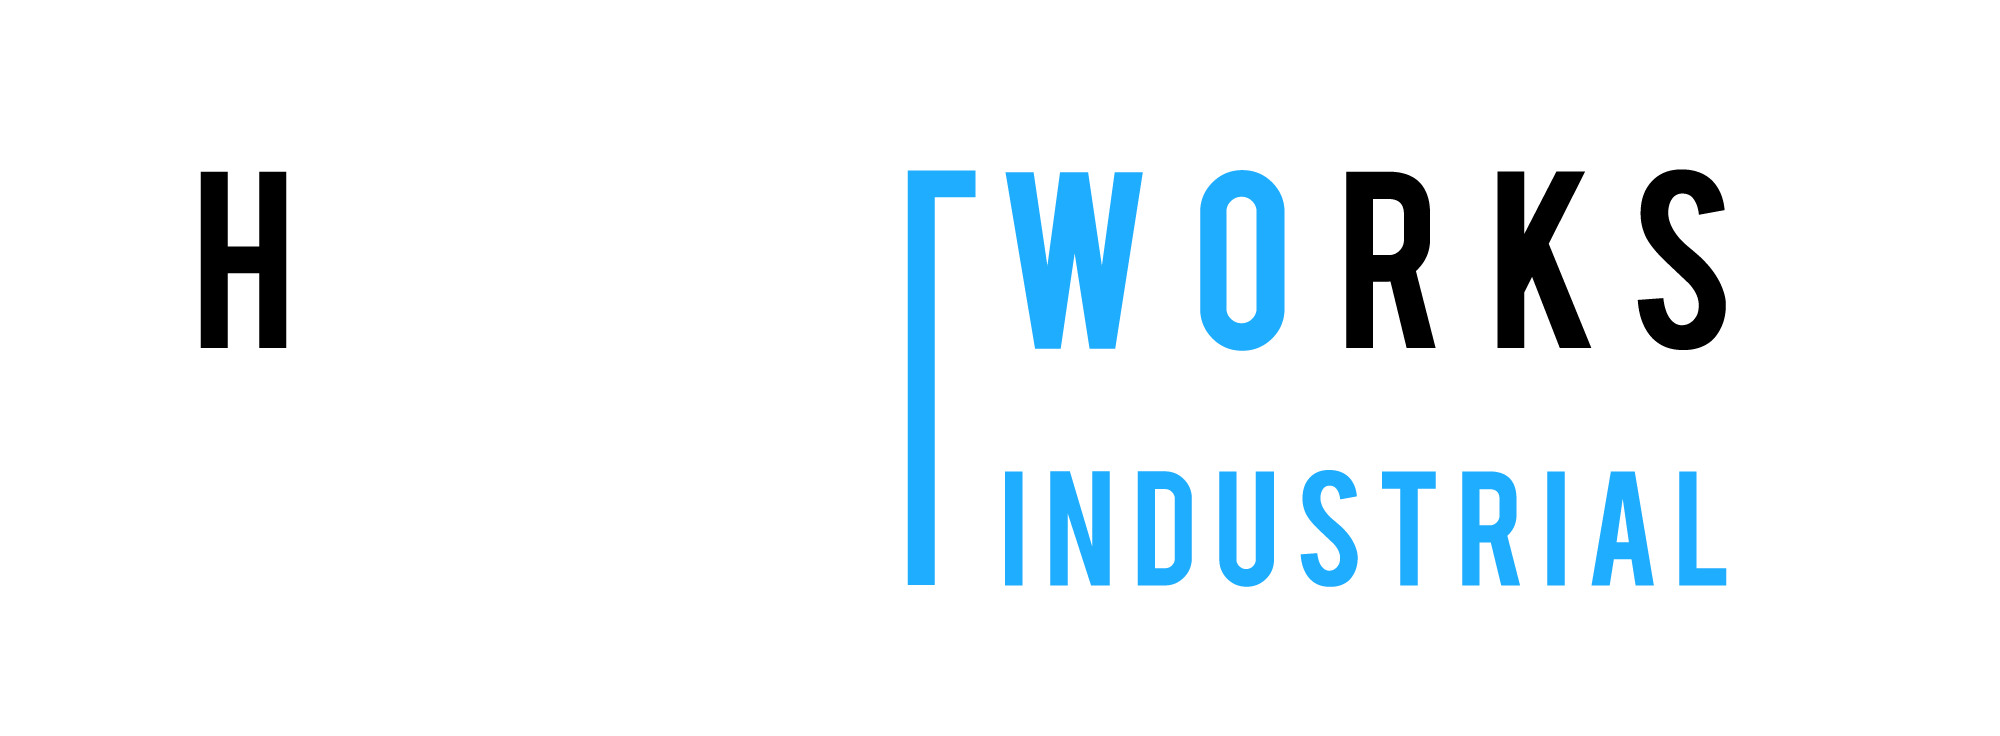 Eight Two Industrial